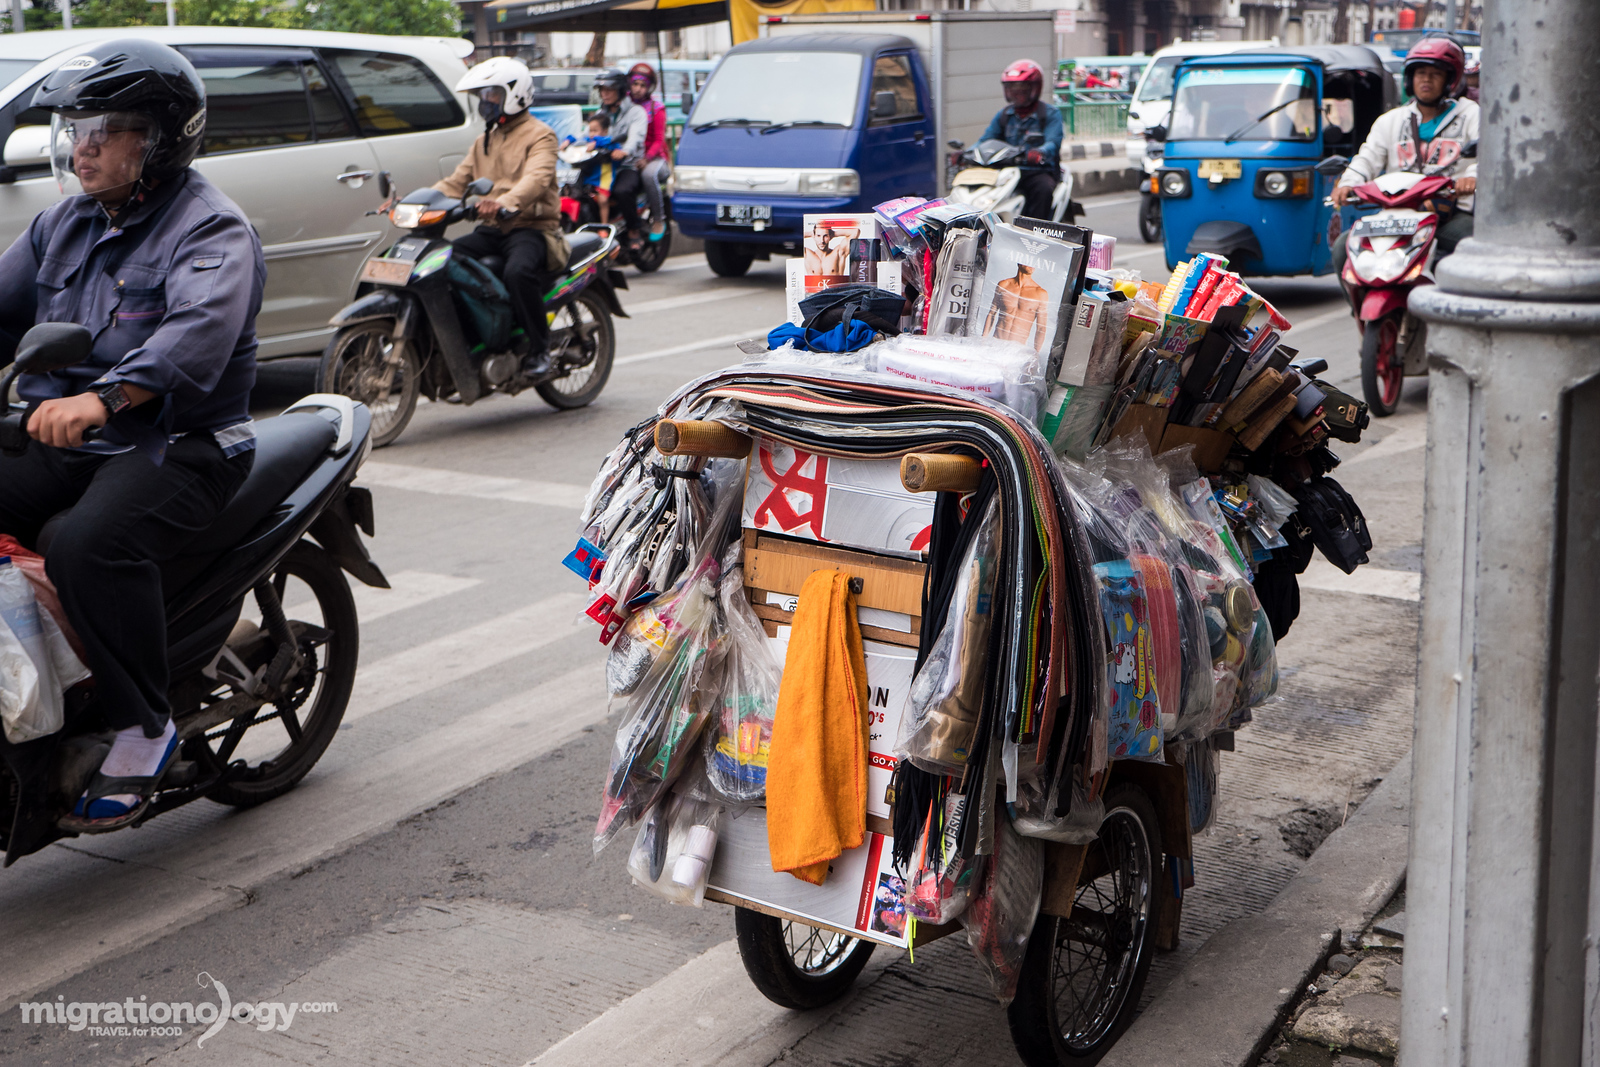 cost of traveling and living in Jakarta